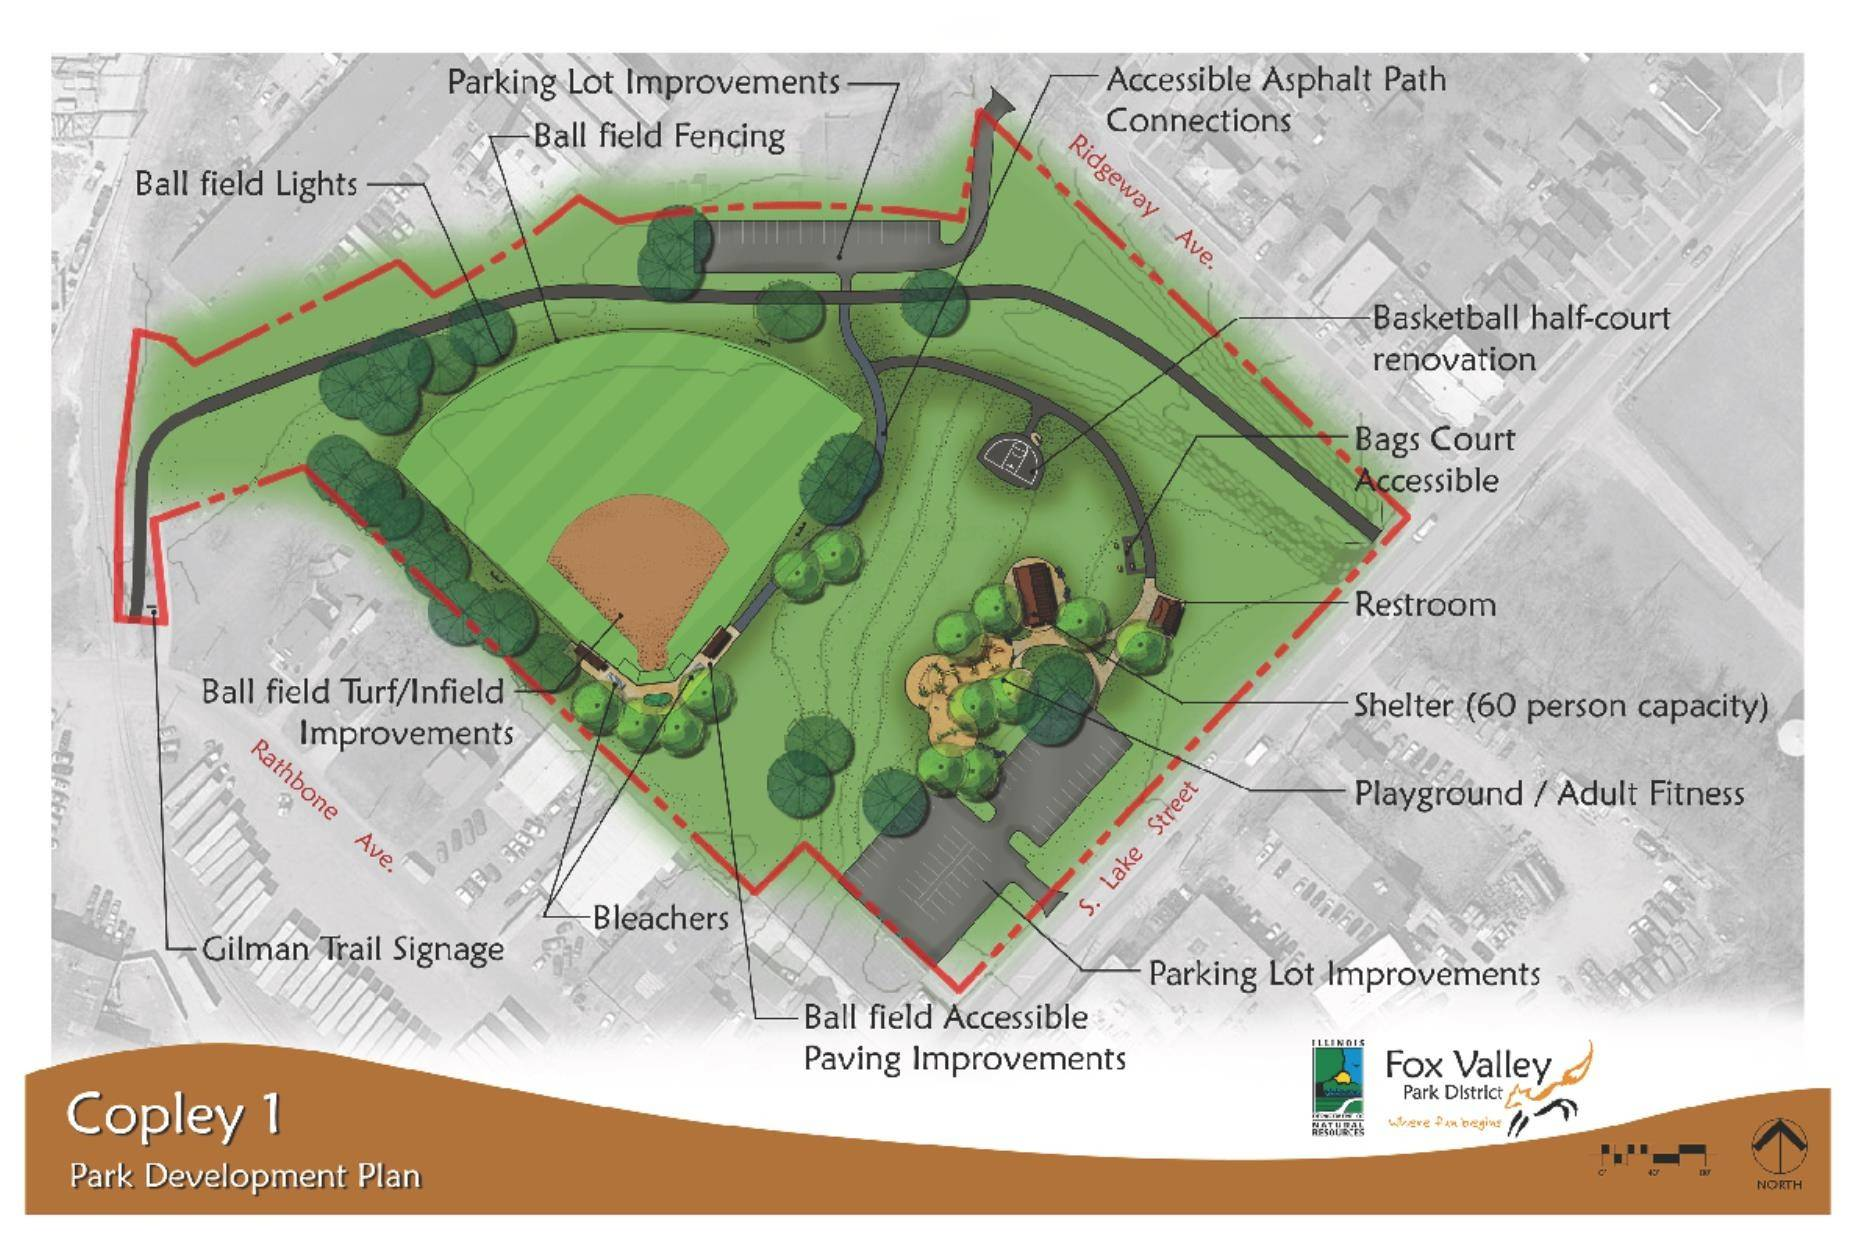 The Fox Valley Park District will use a $400,000 grant from the Illinois Department of Natural Resources to help fund redevelopment of Copley I Park near downtown Aurora.